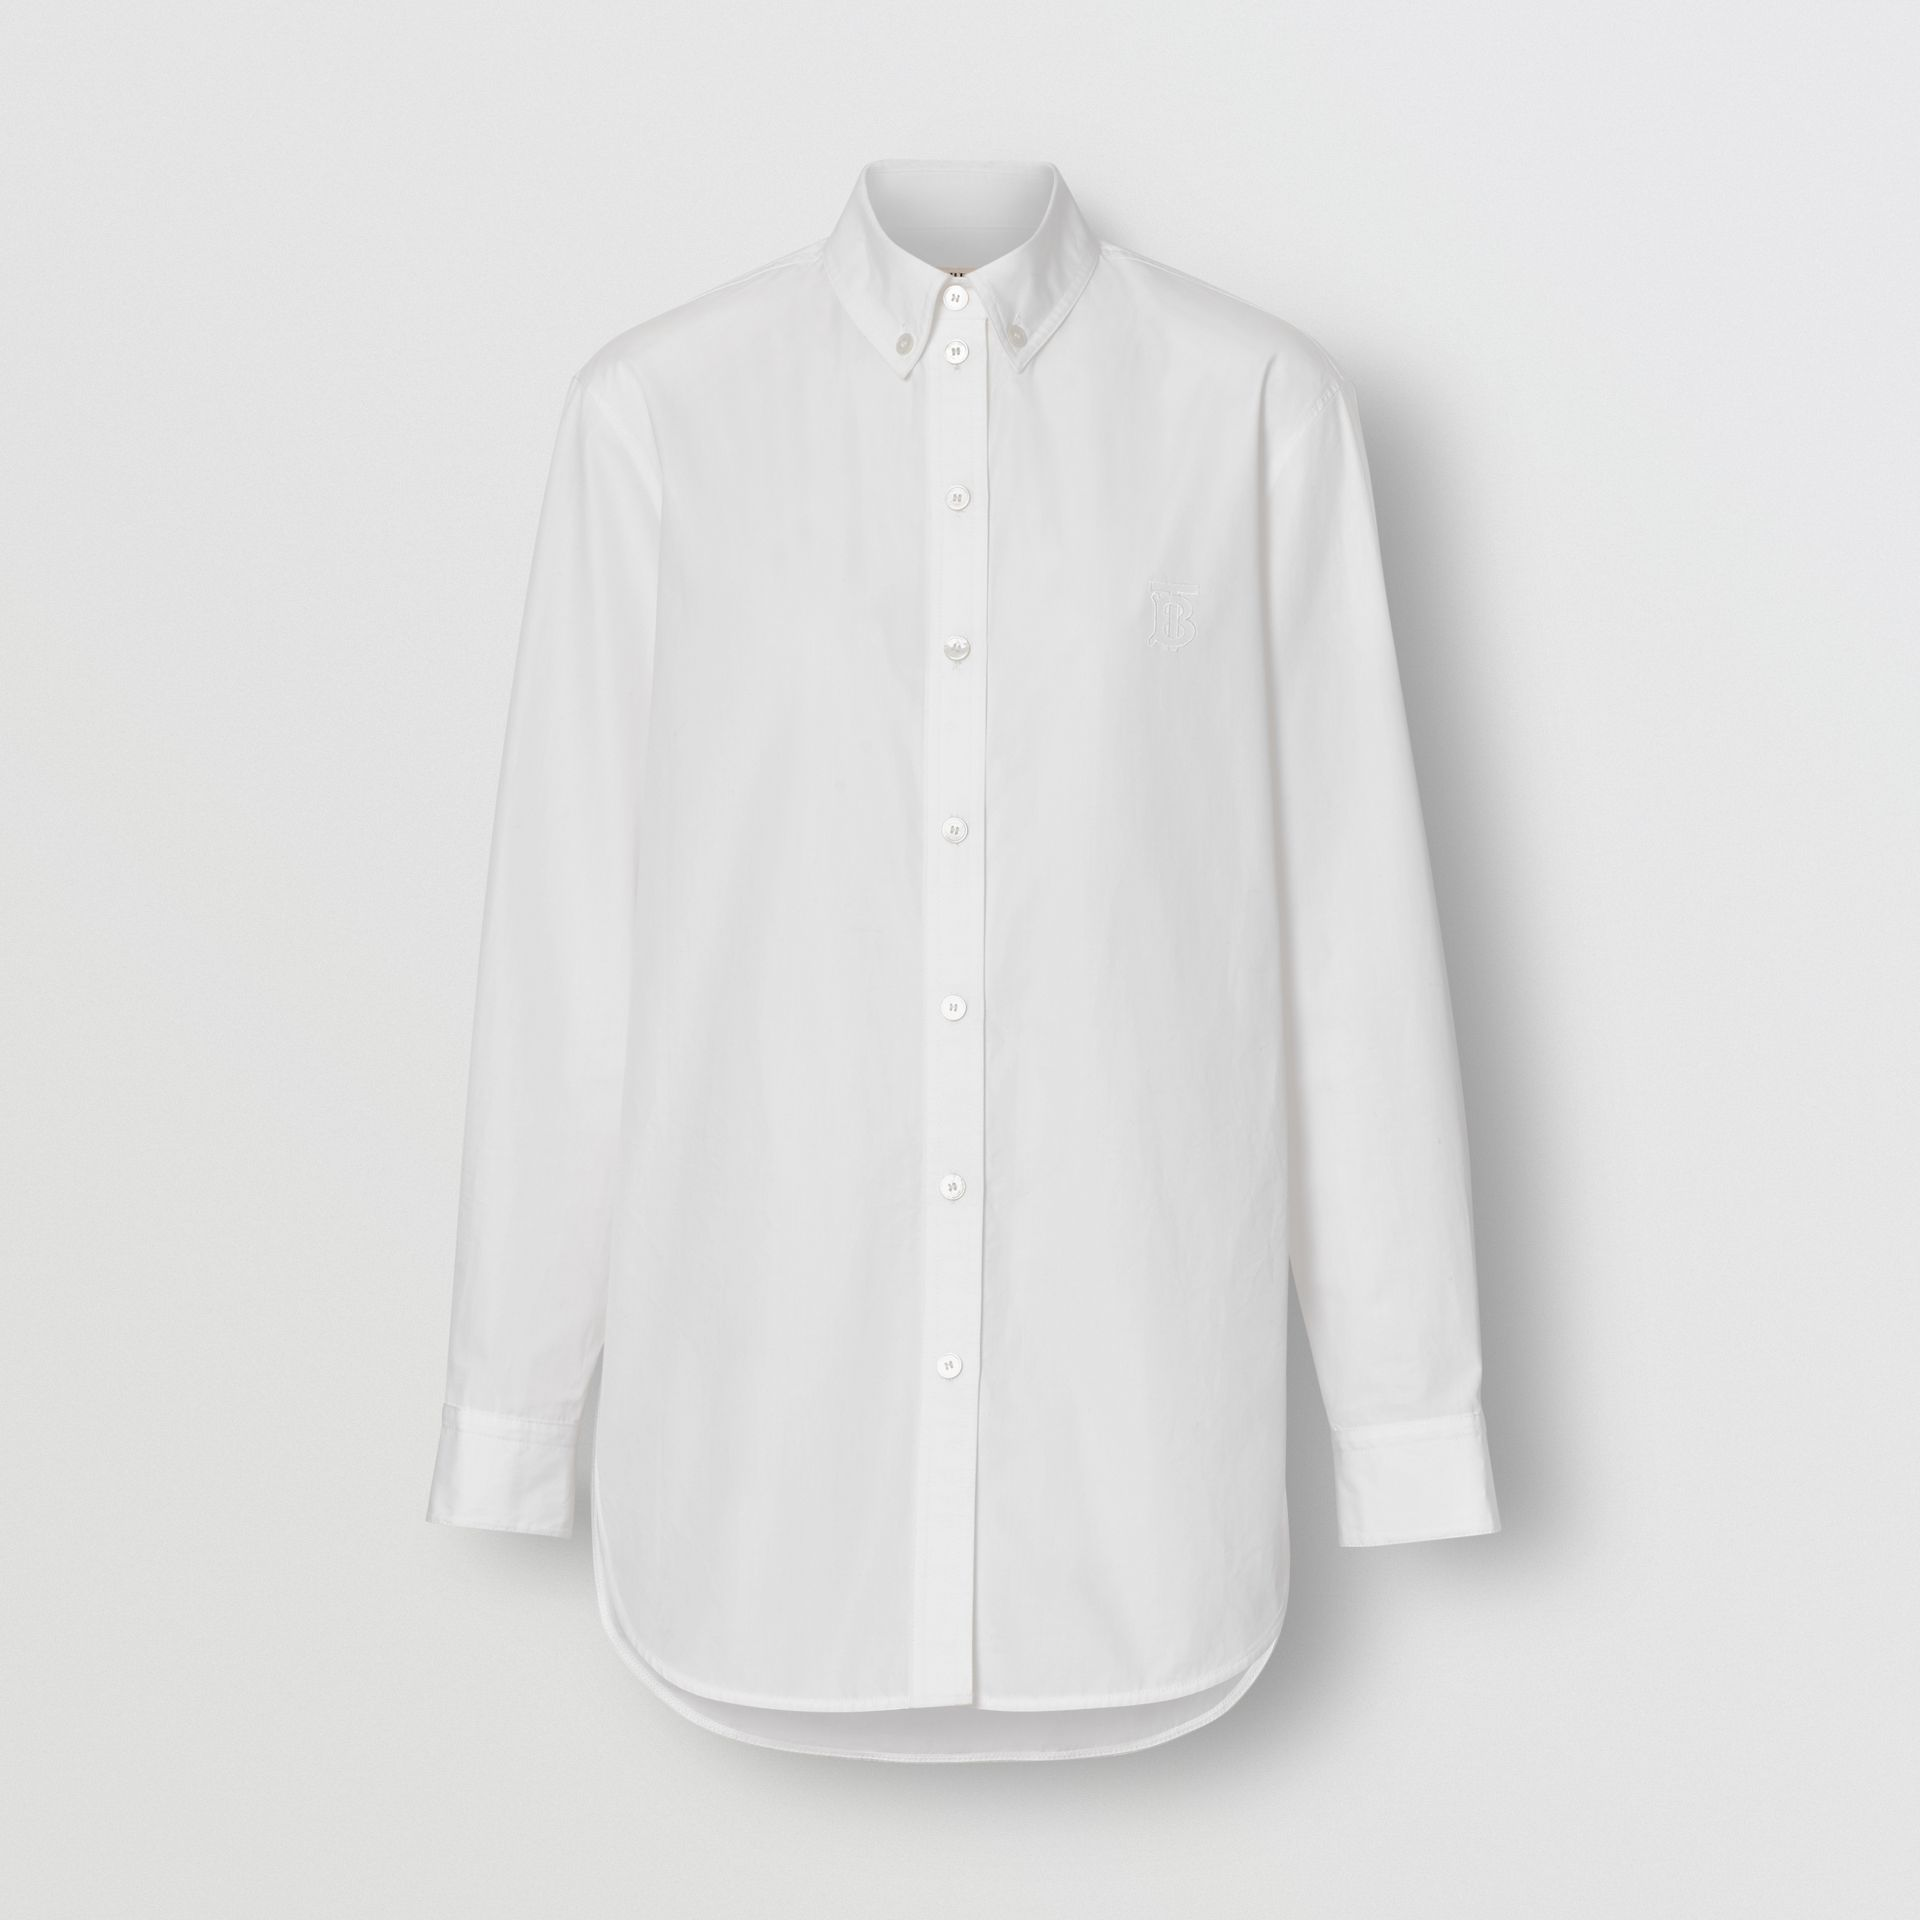 Button-down Collar Monogram Motif Cotton Shirt in White - Women | Burberry - gallery image 3